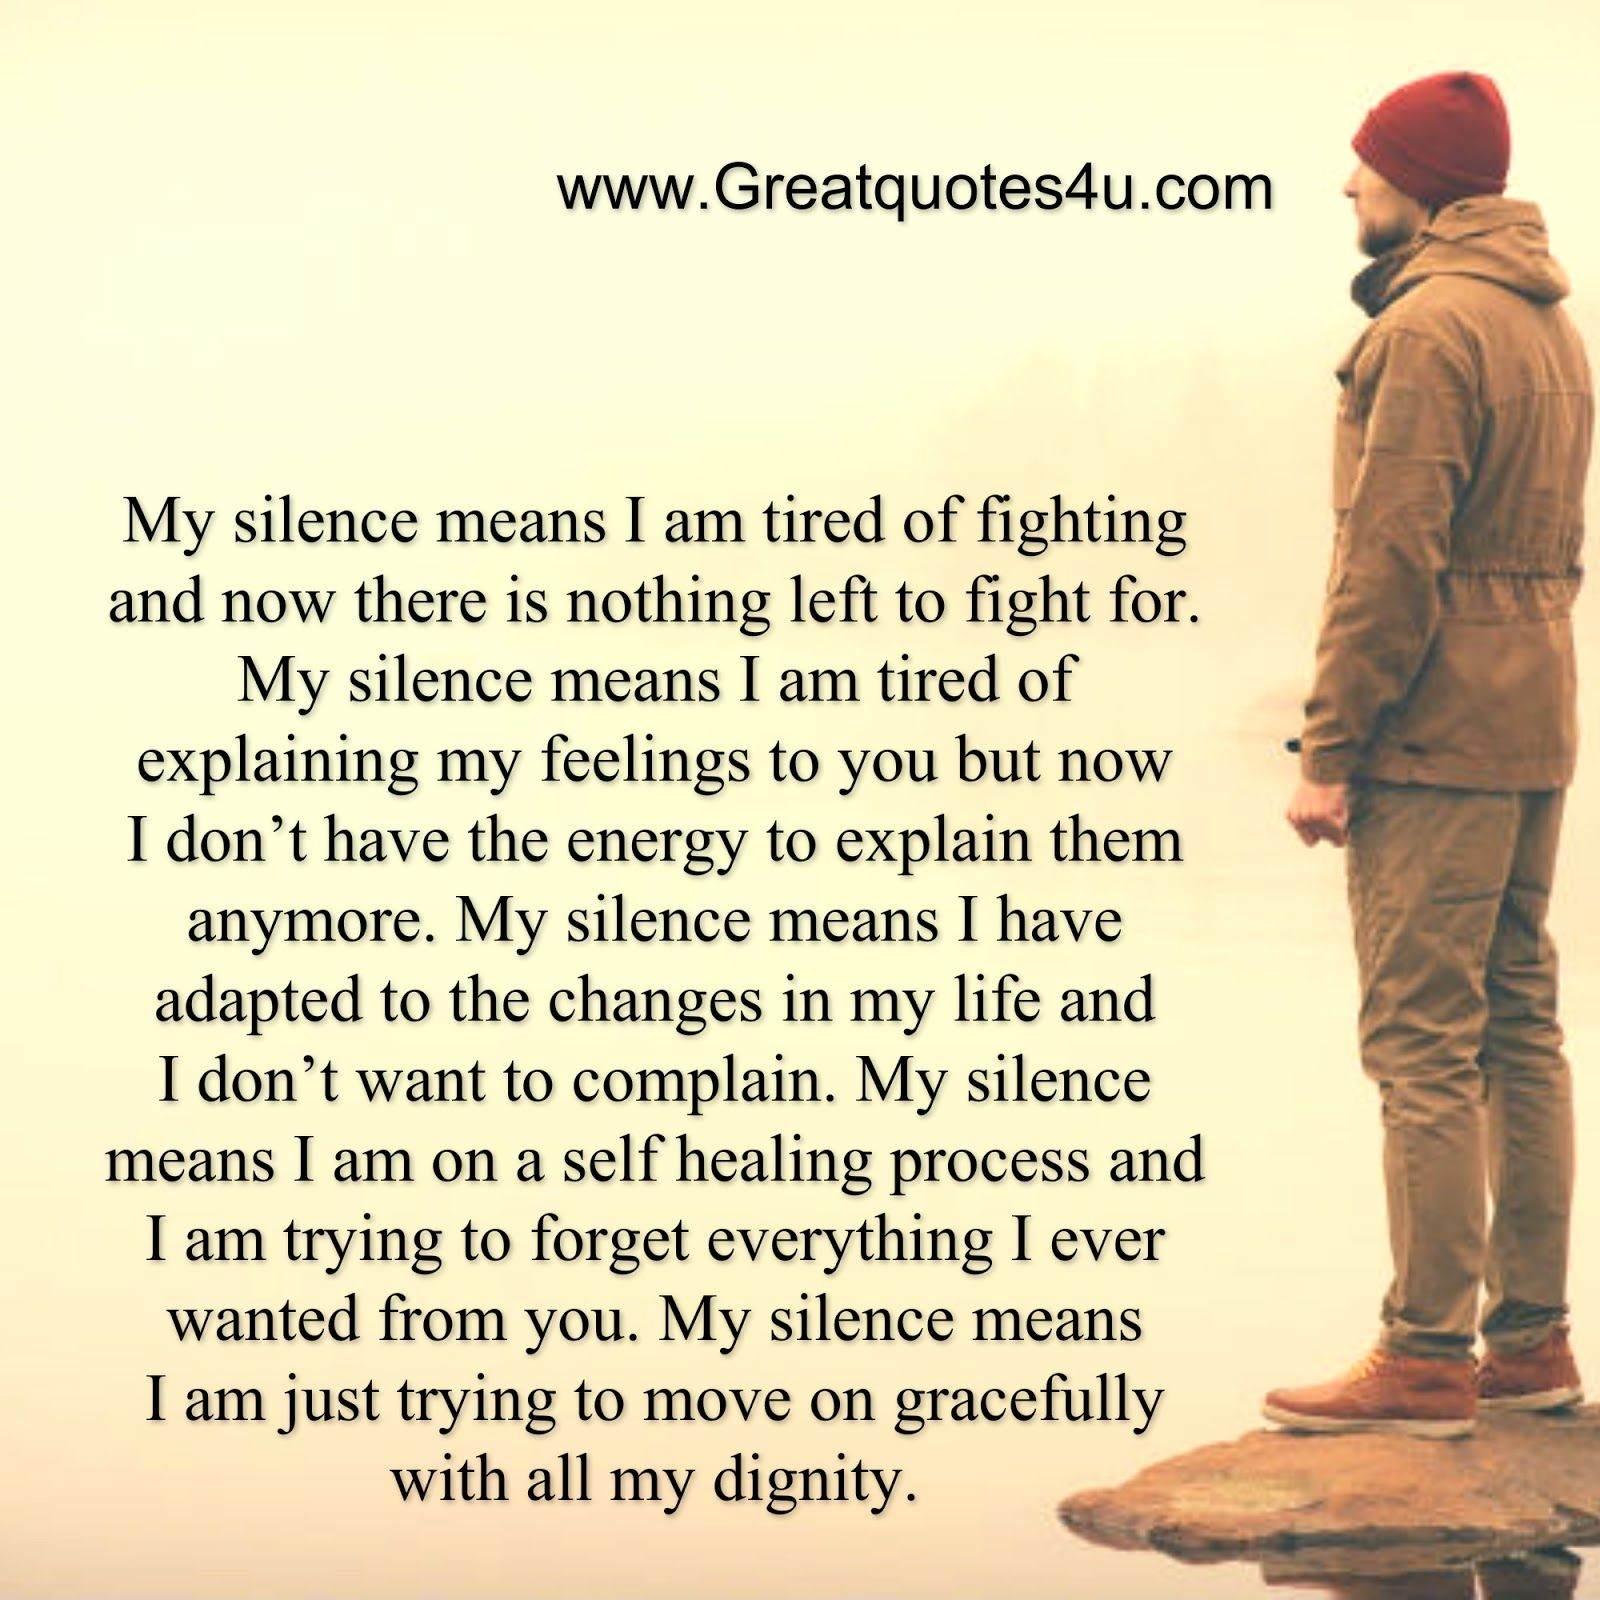 My silence means I am tired of fighting and now there is